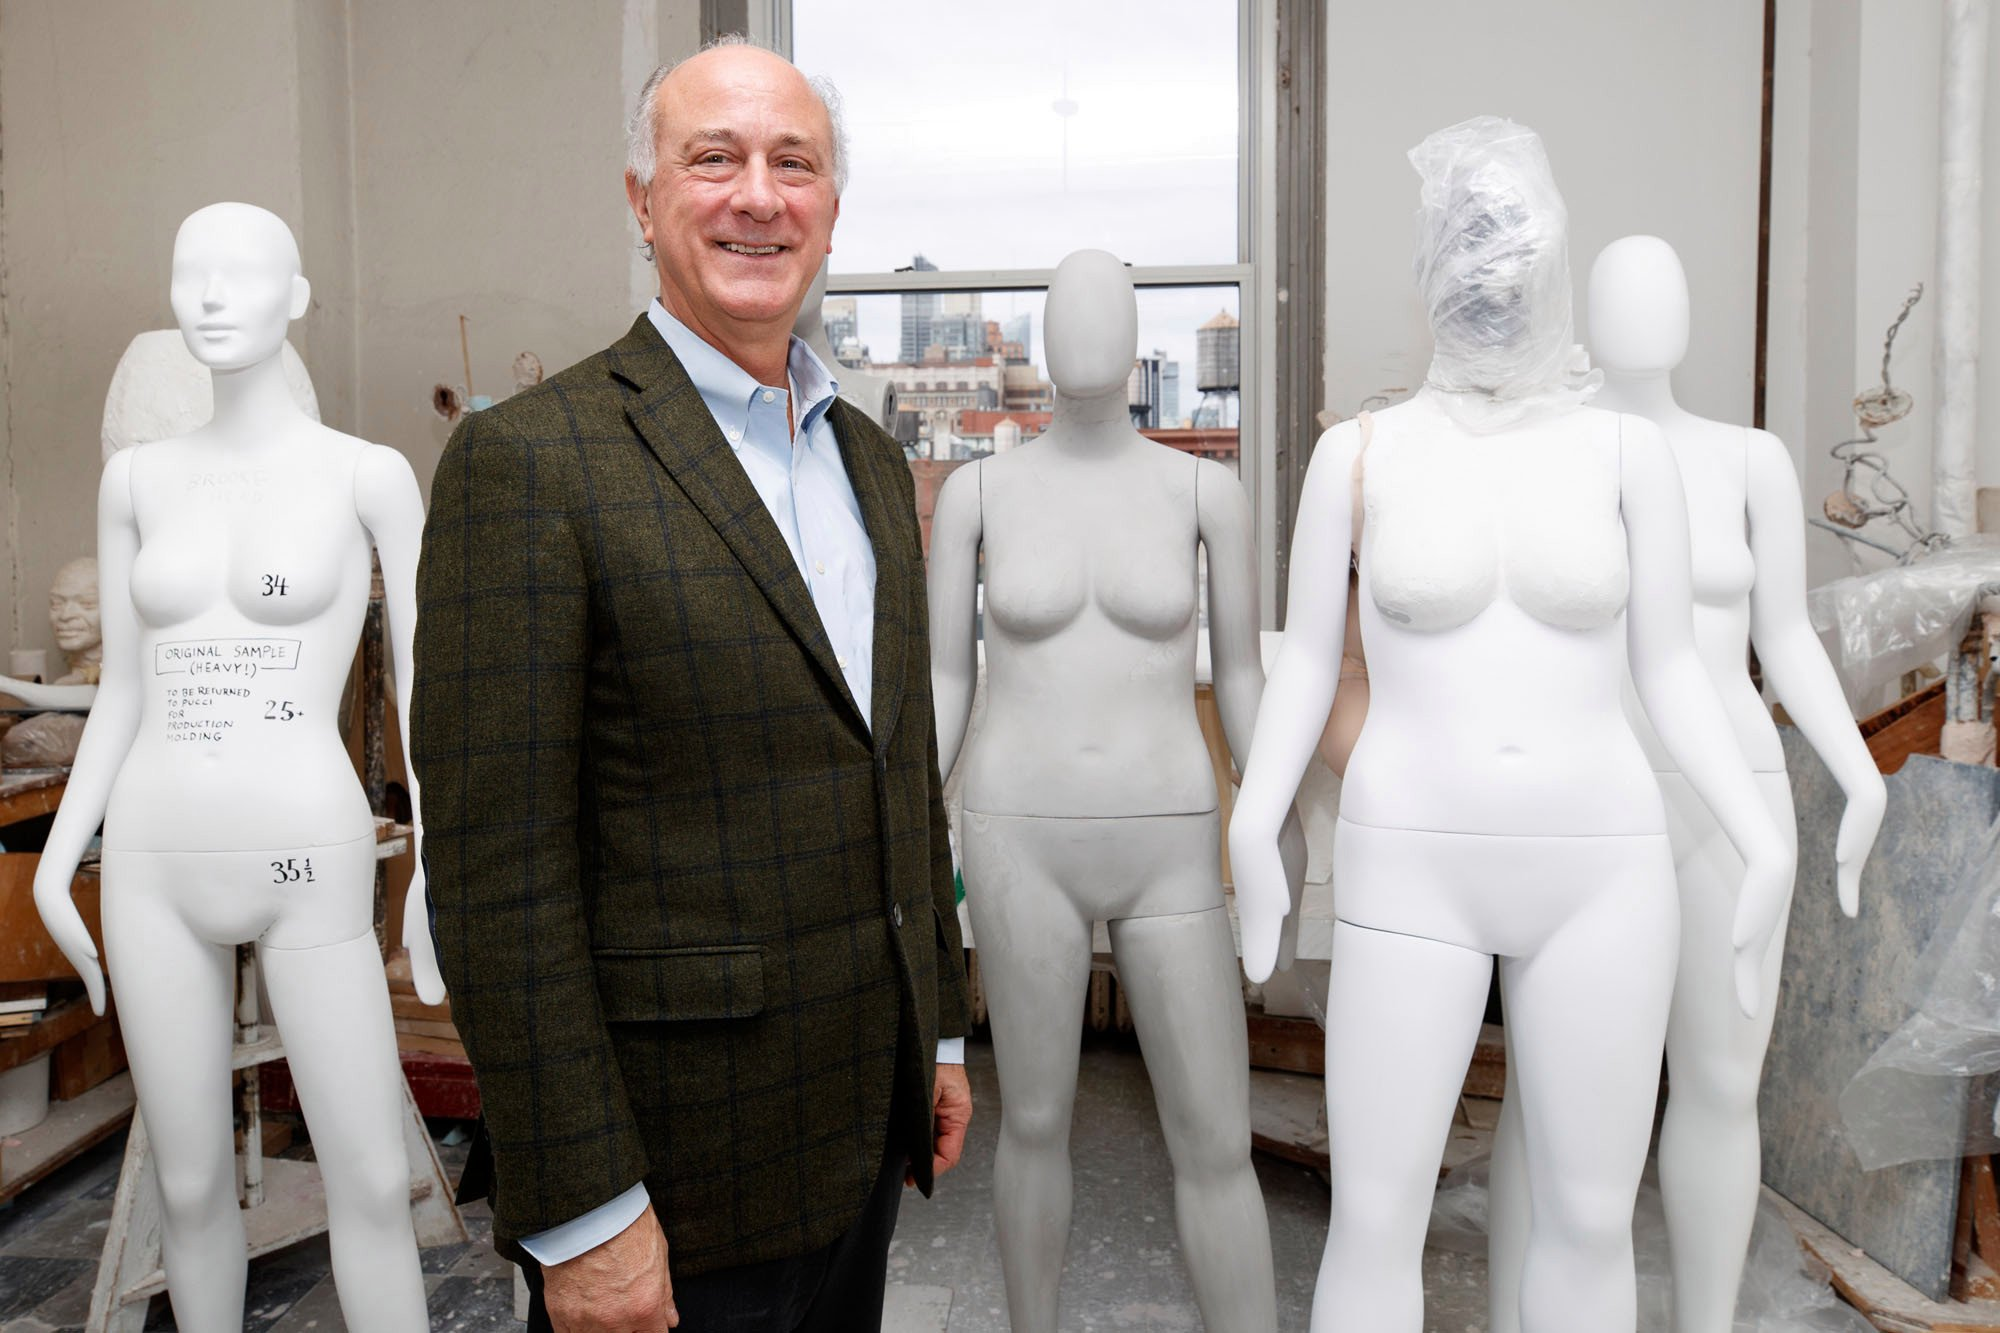 Real-girl mannequins are coming to a store near you